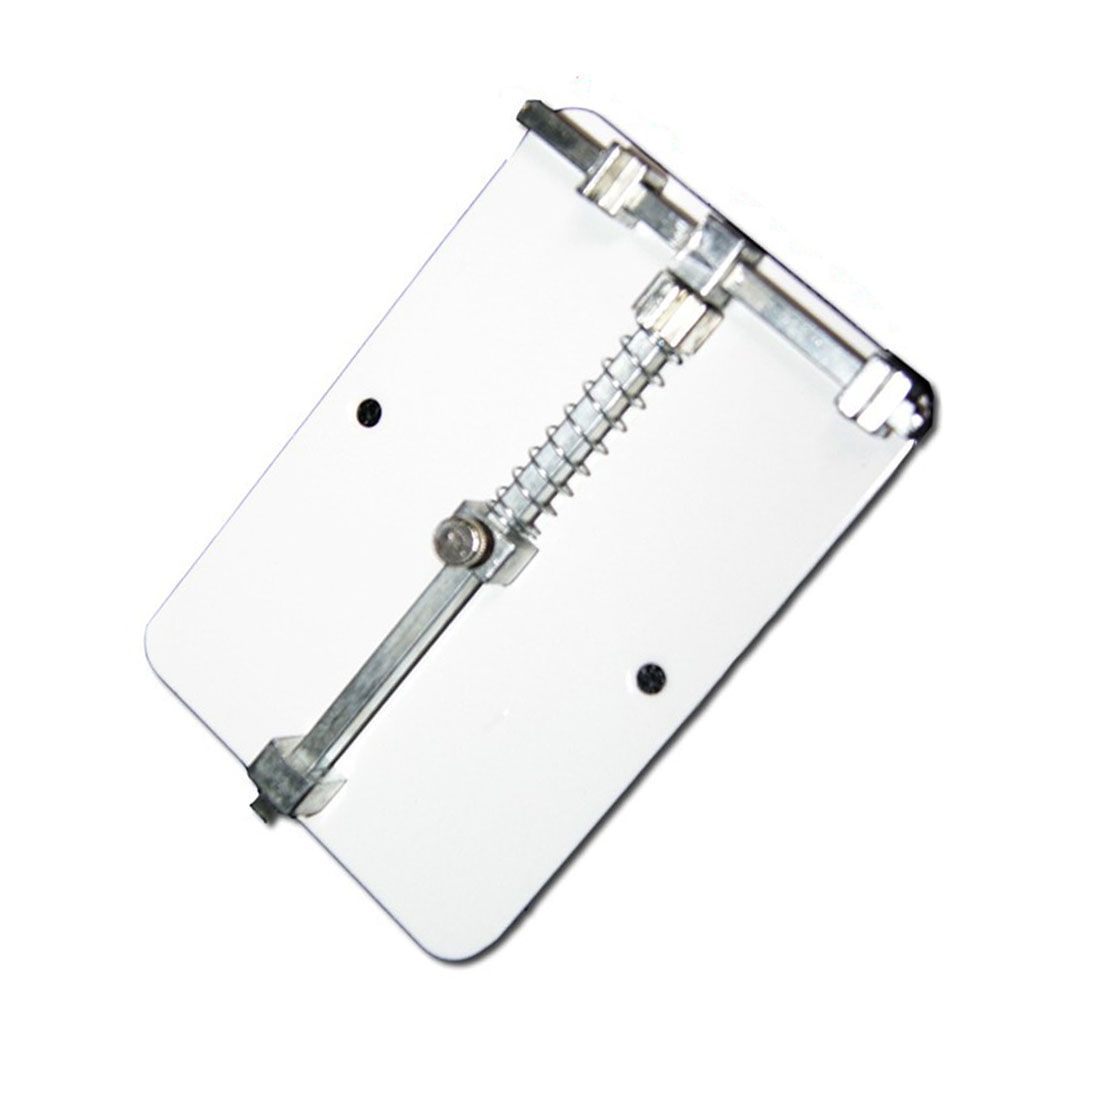 Hot1pc High Quality 812cm Fixture Motherboard Pcb Holder For Metal Circuit Board Repairing Repair Tool Mobile Phone In Hand Sets From Tools On Alibaba Group